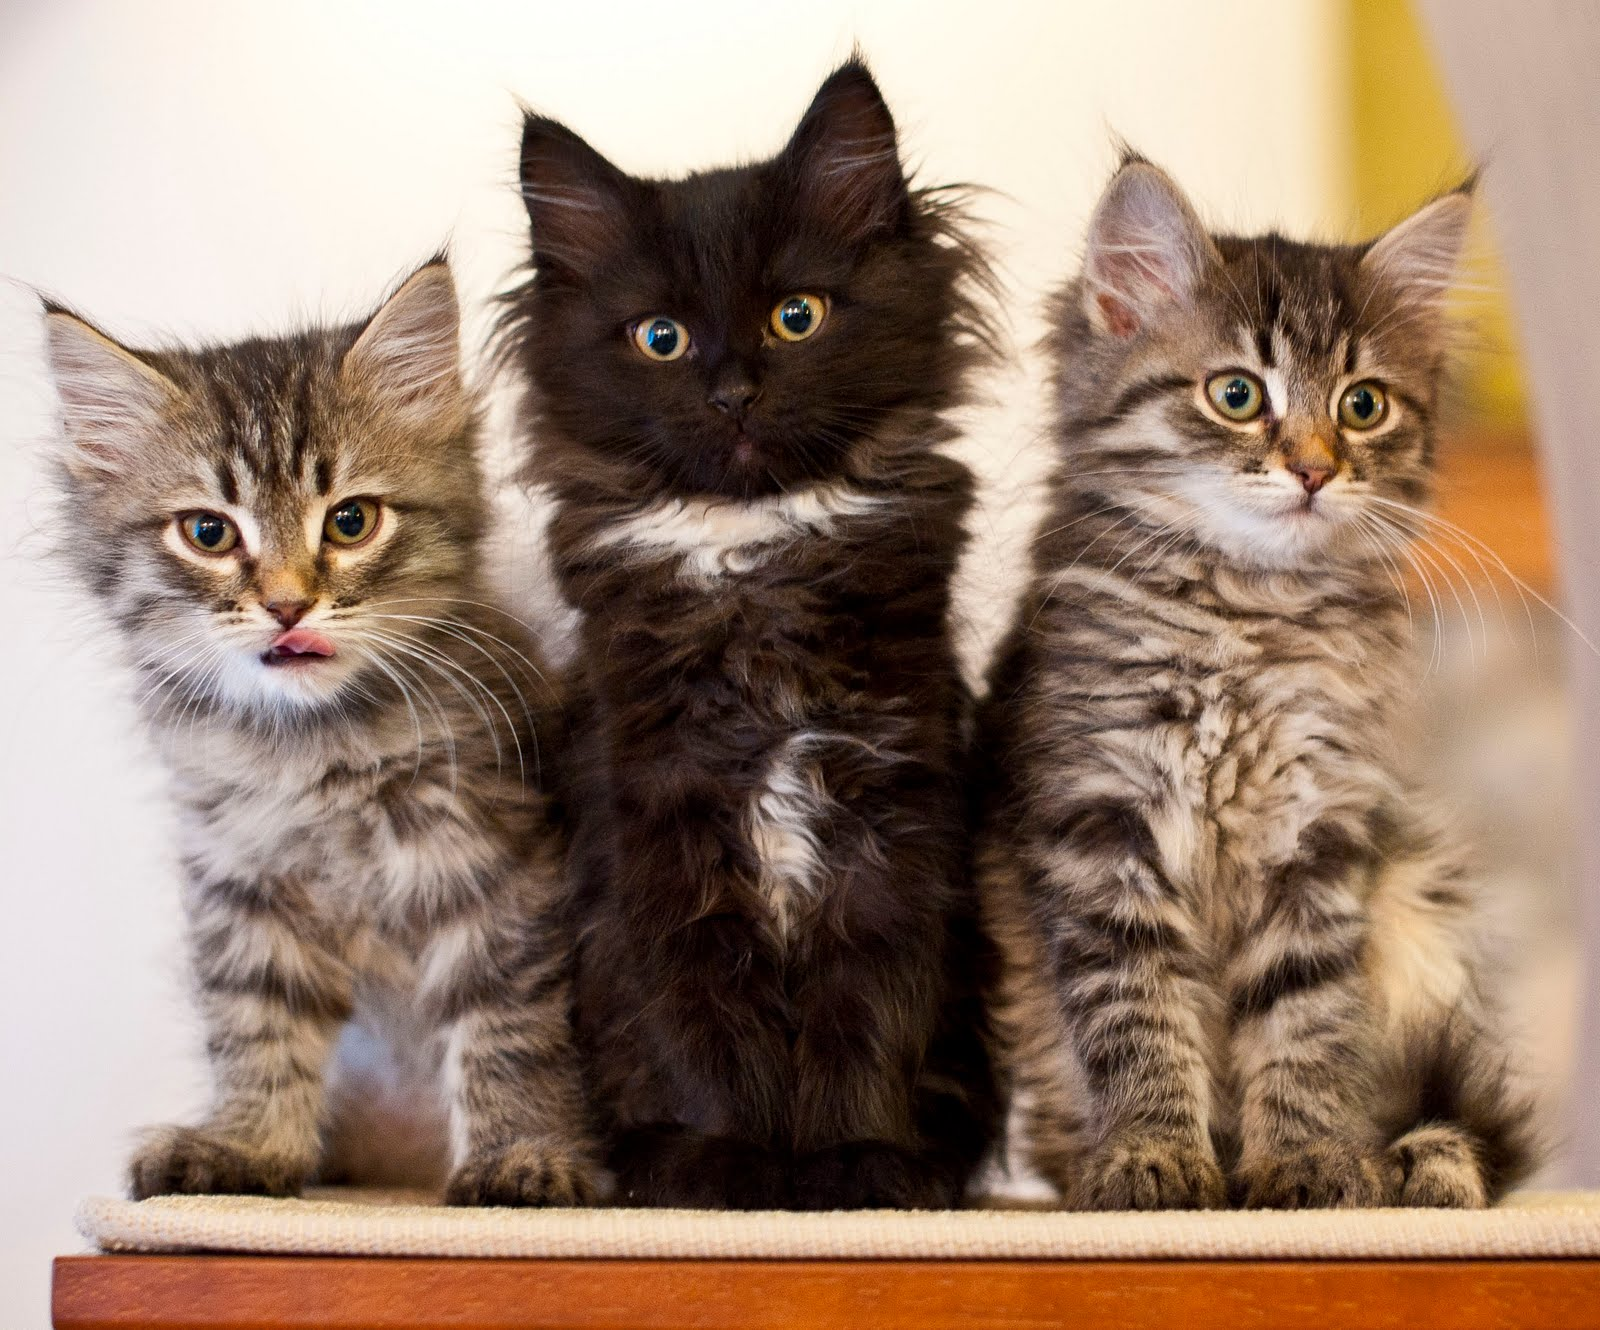 Home with pets picture perfect kittens The three cats